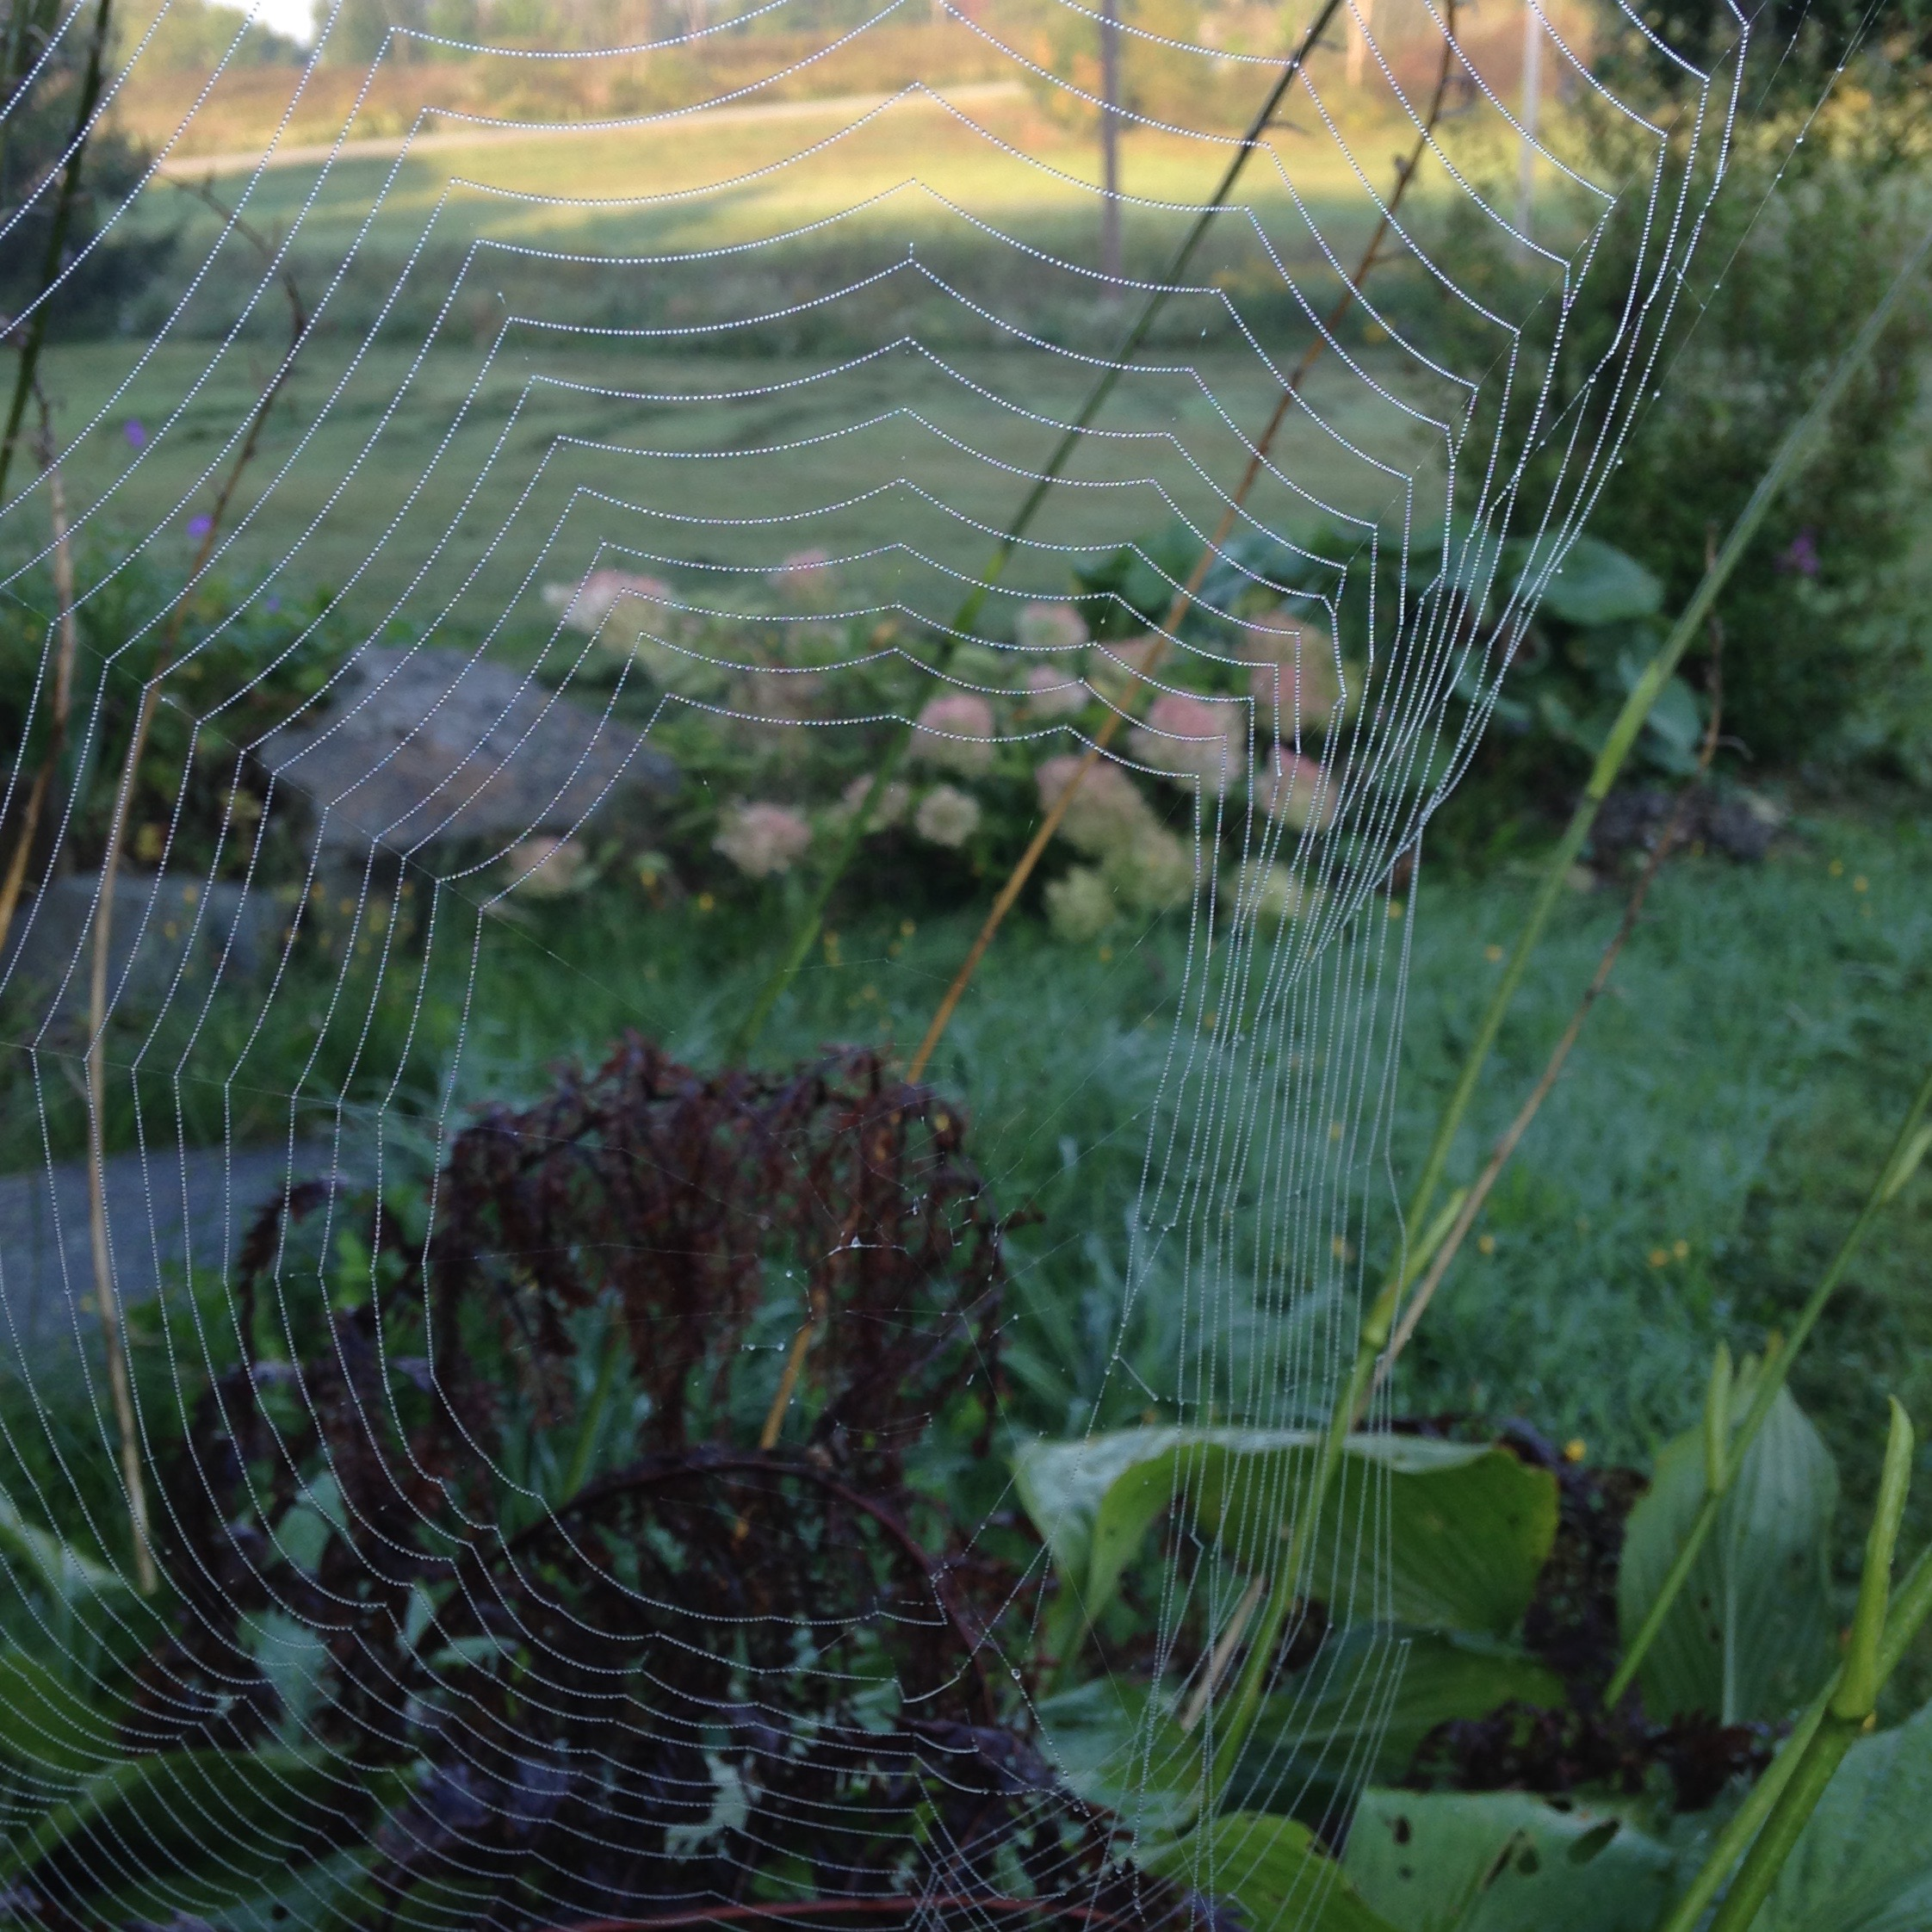 In my garden this morning: I wish I could knit as fast as a spider spins its web